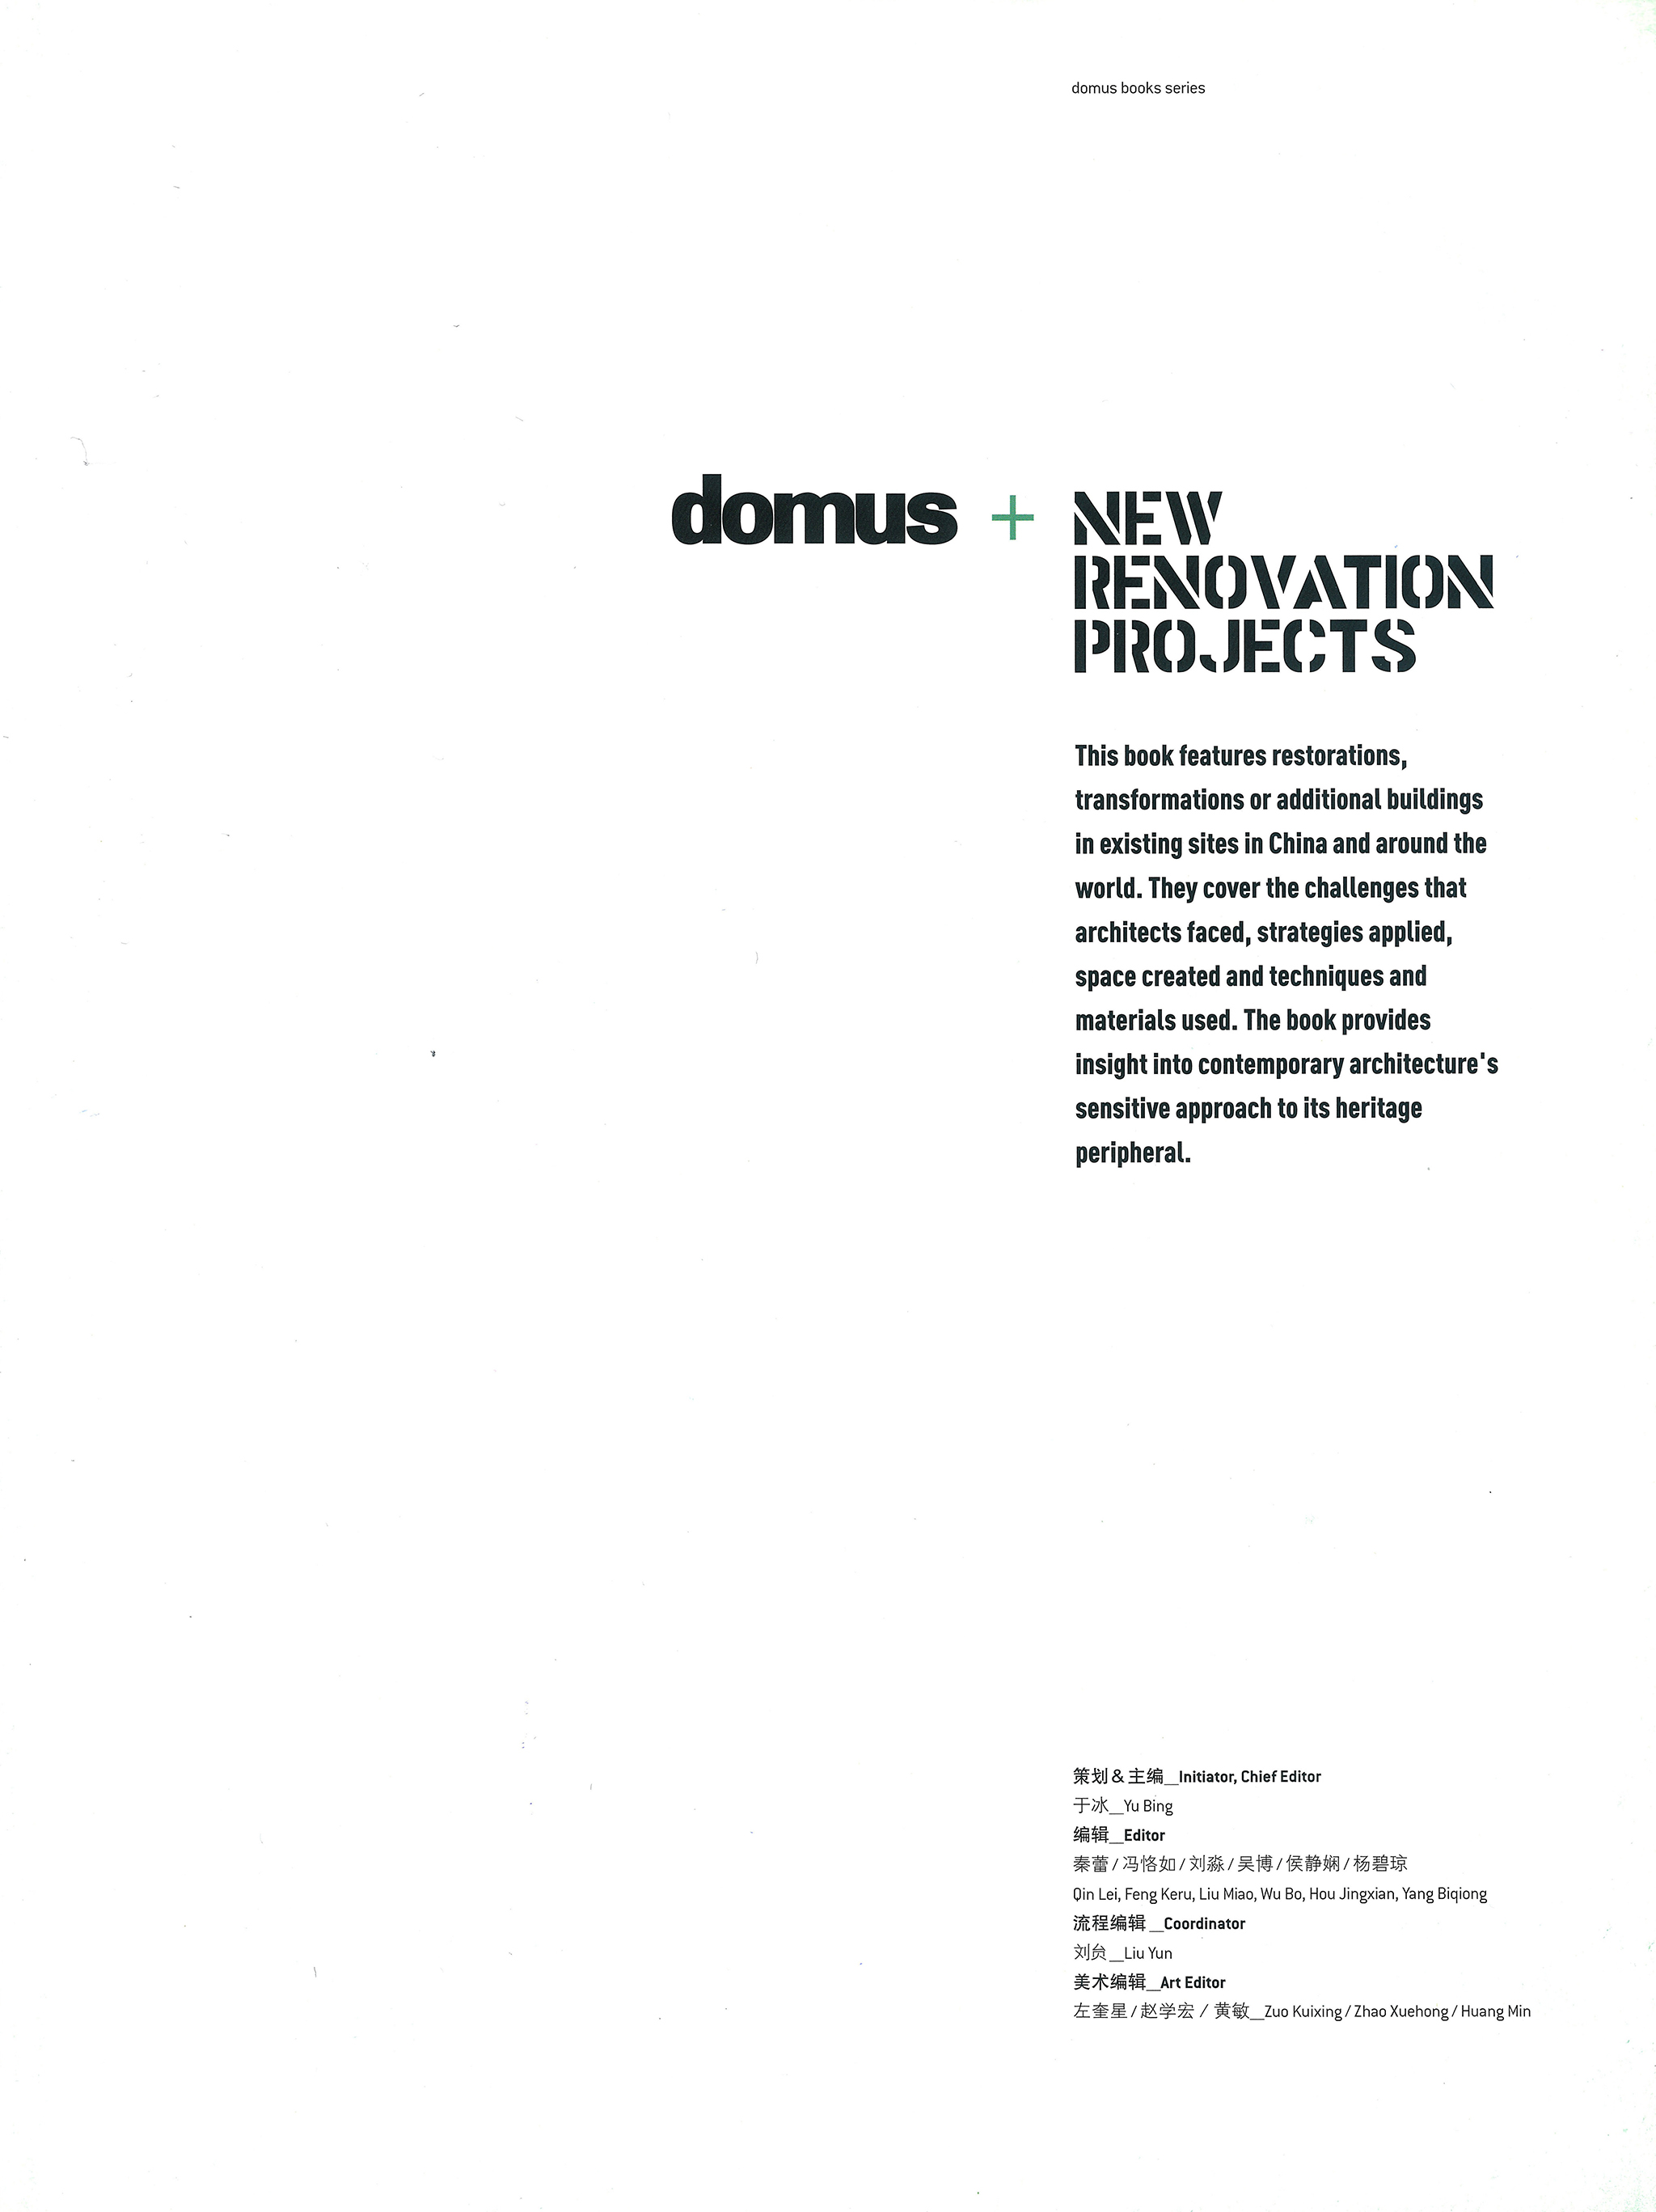 DOMUS + NEW RENOVATION PROJECTS